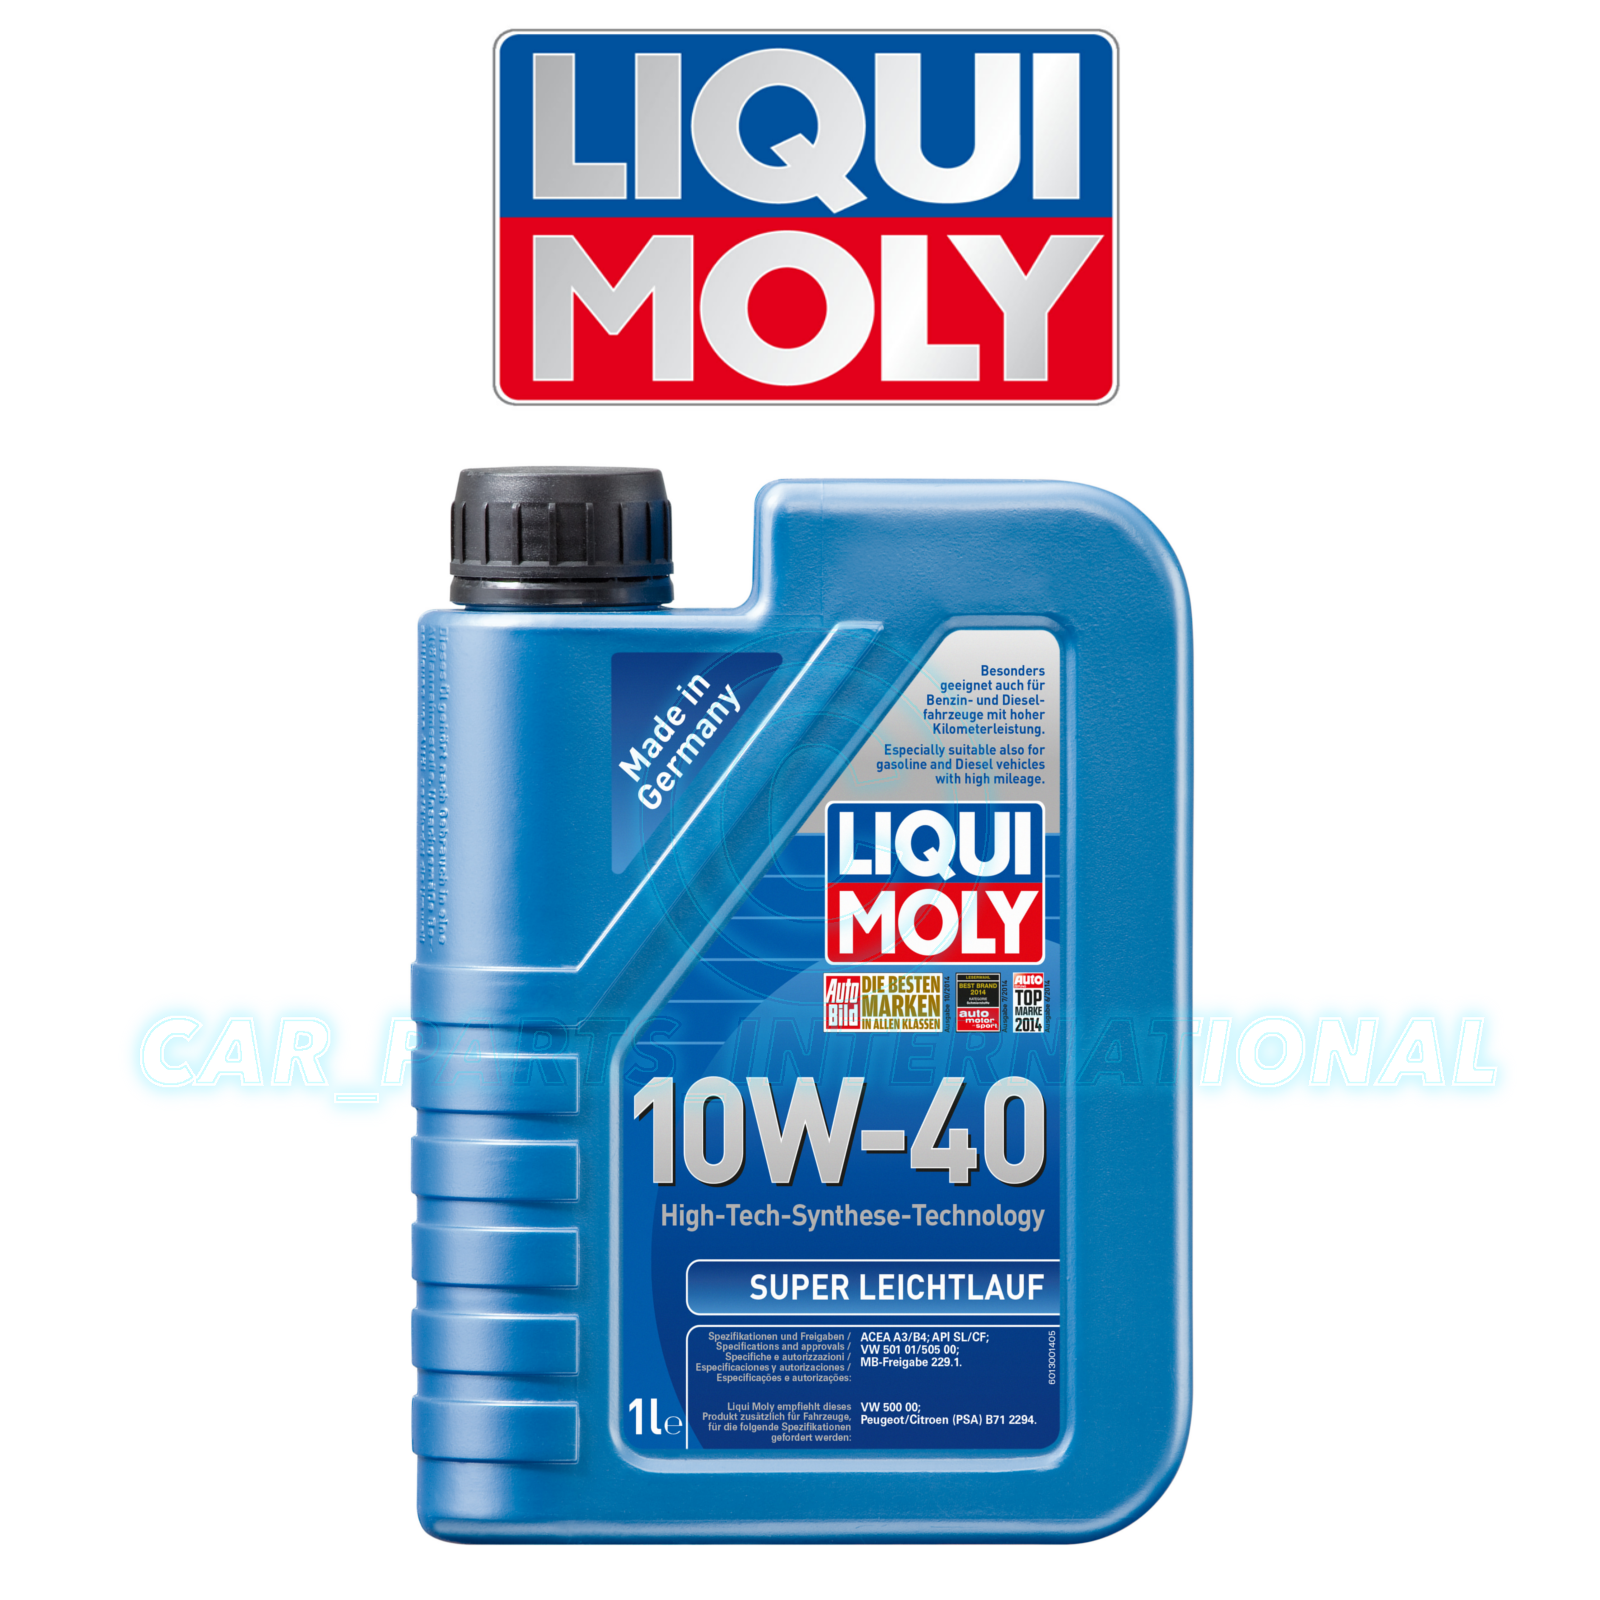 liqui moly super leichtlauf 10w40 engine oil 1l ebay. Black Bedroom Furniture Sets. Home Design Ideas